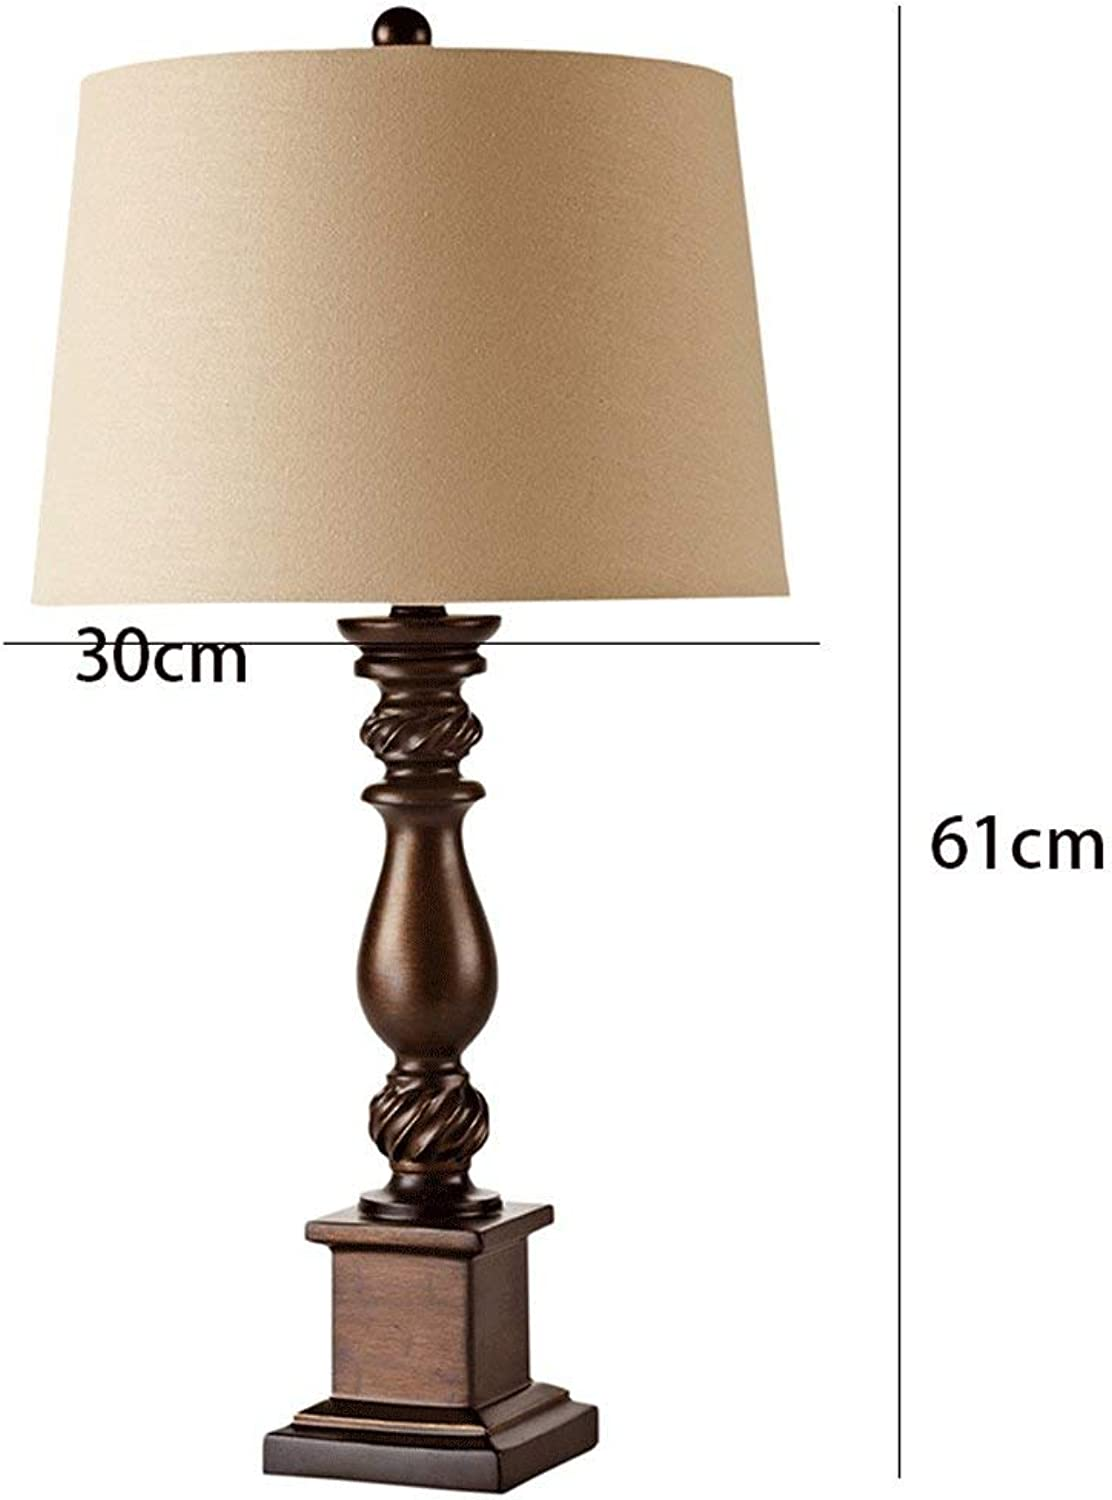 WHKFD Vintage Light Studio with Natural Light on The Bedside Table, Vintage, Brown, H61Cm  W30Cm